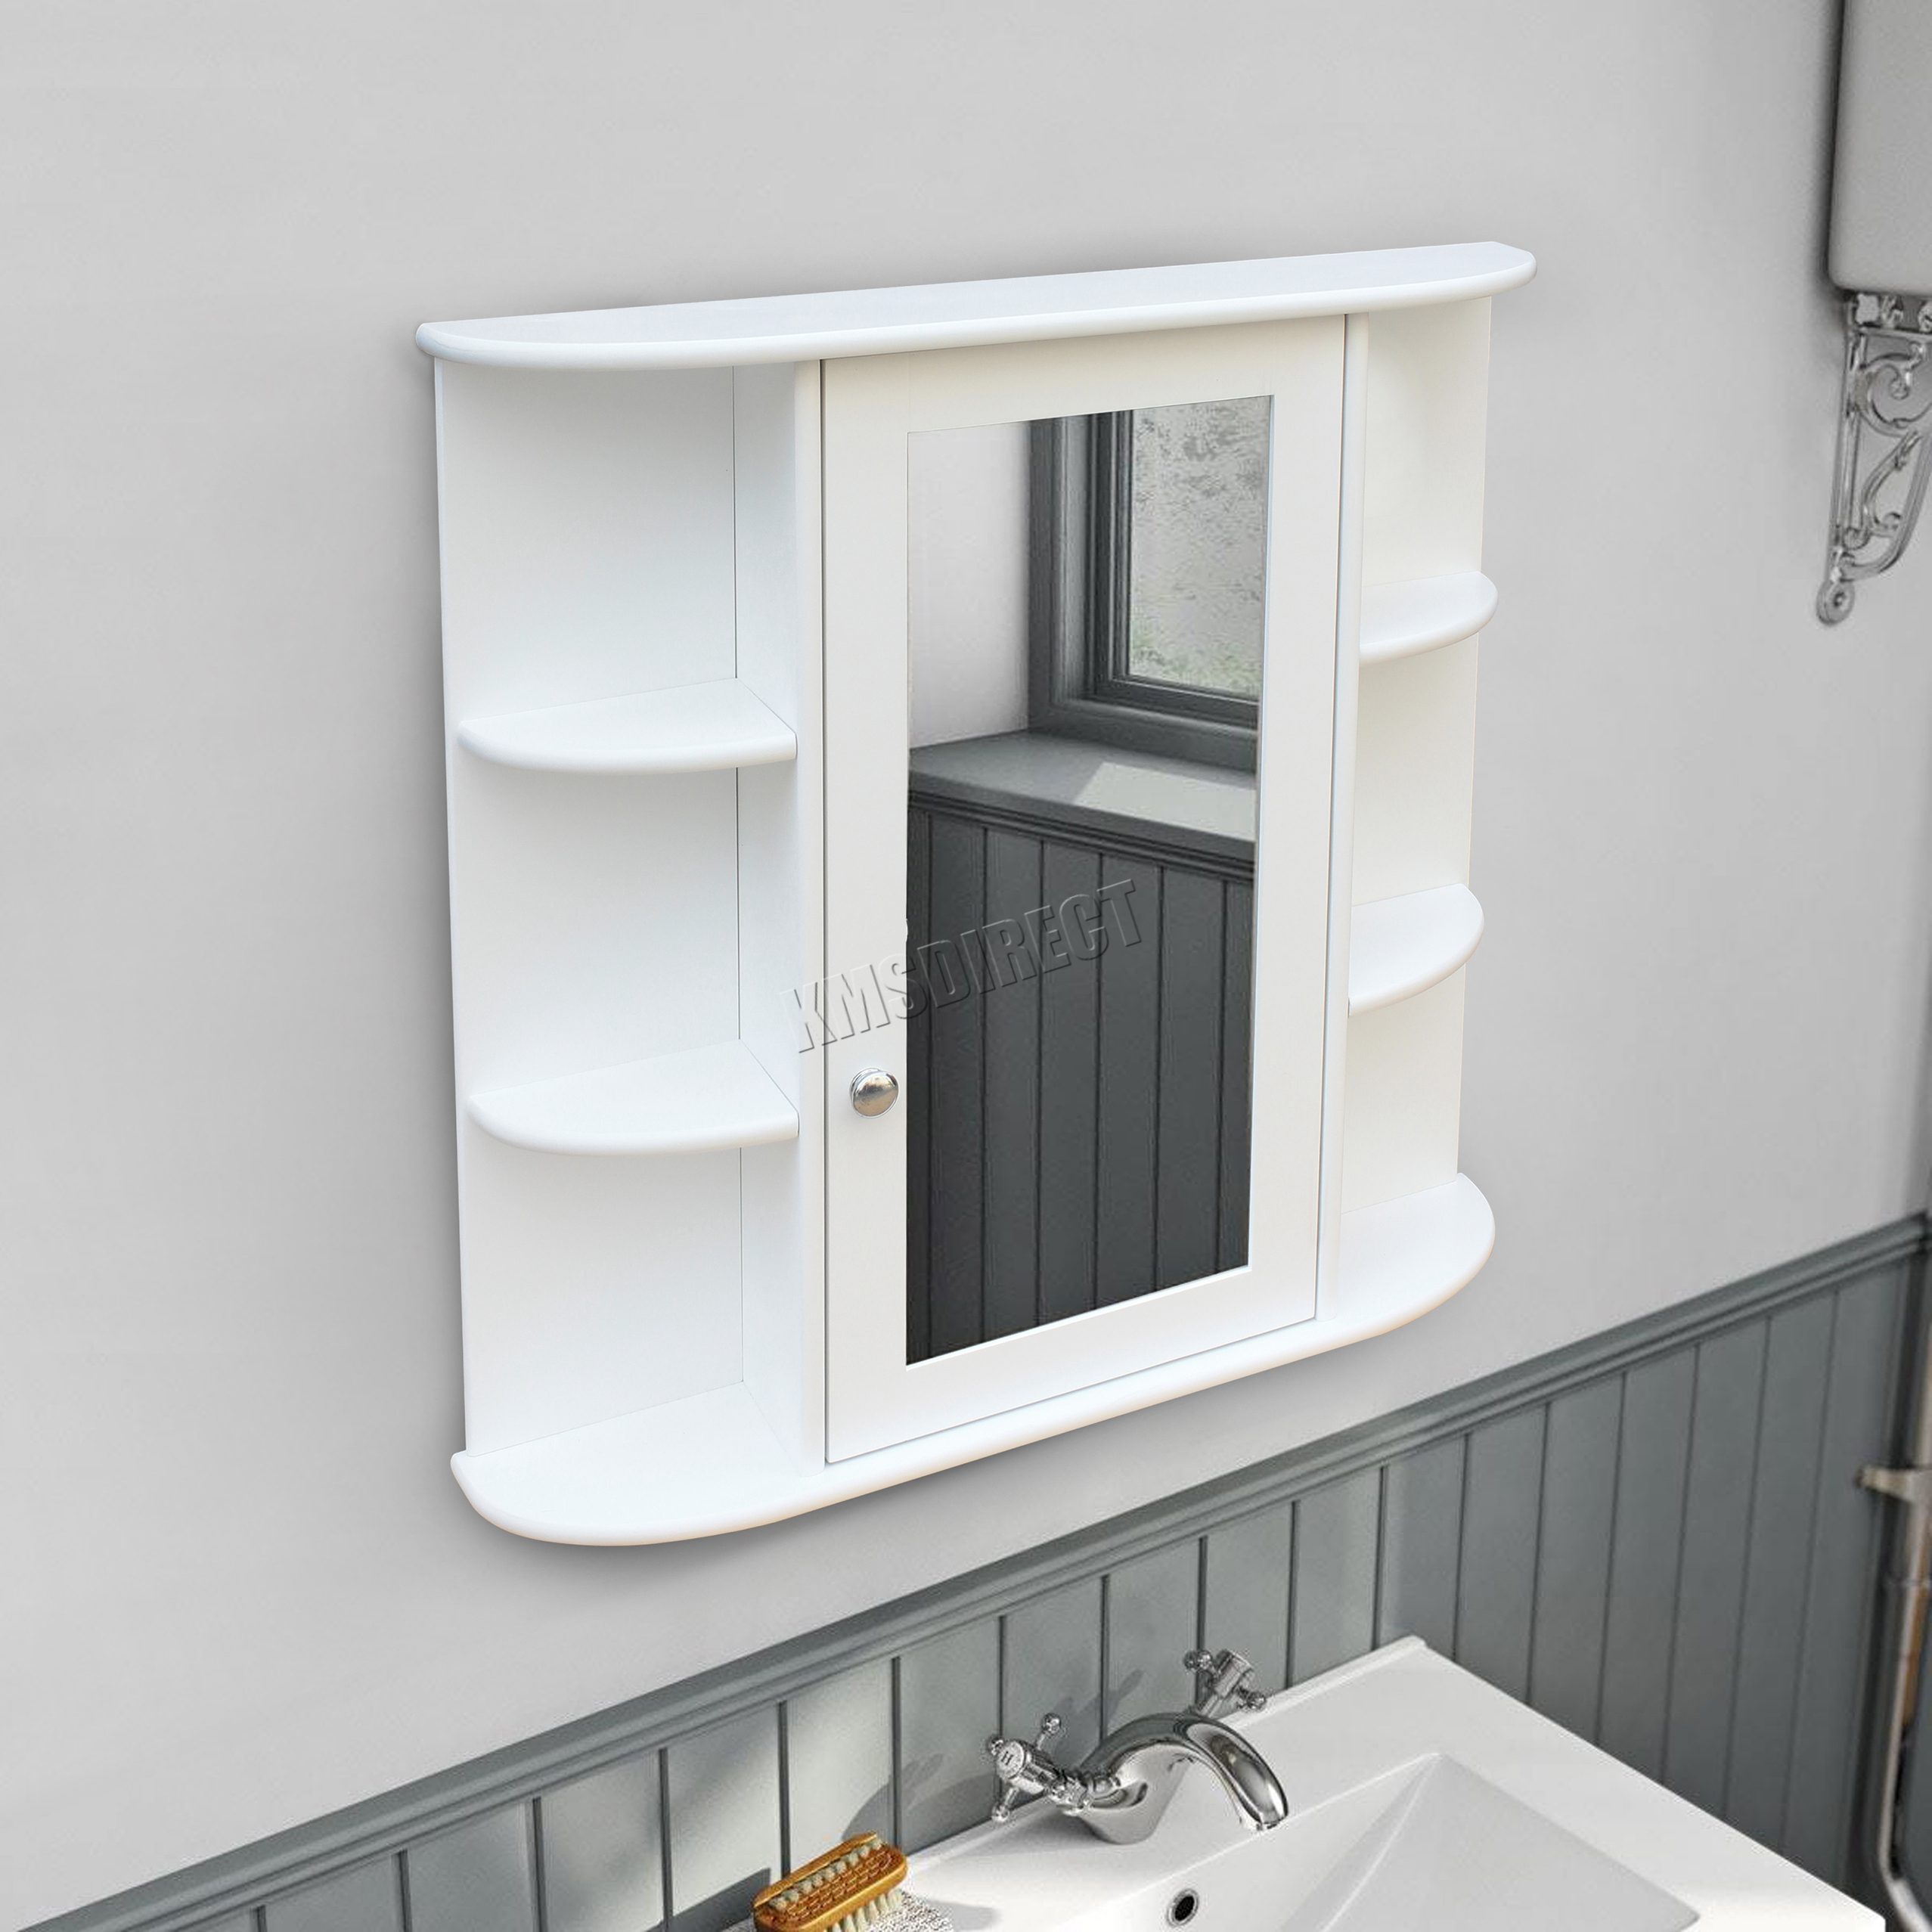 cabinet mount cupboard wall unit tall storage sentinel shelving wooden bathroom shelf westwood itm white